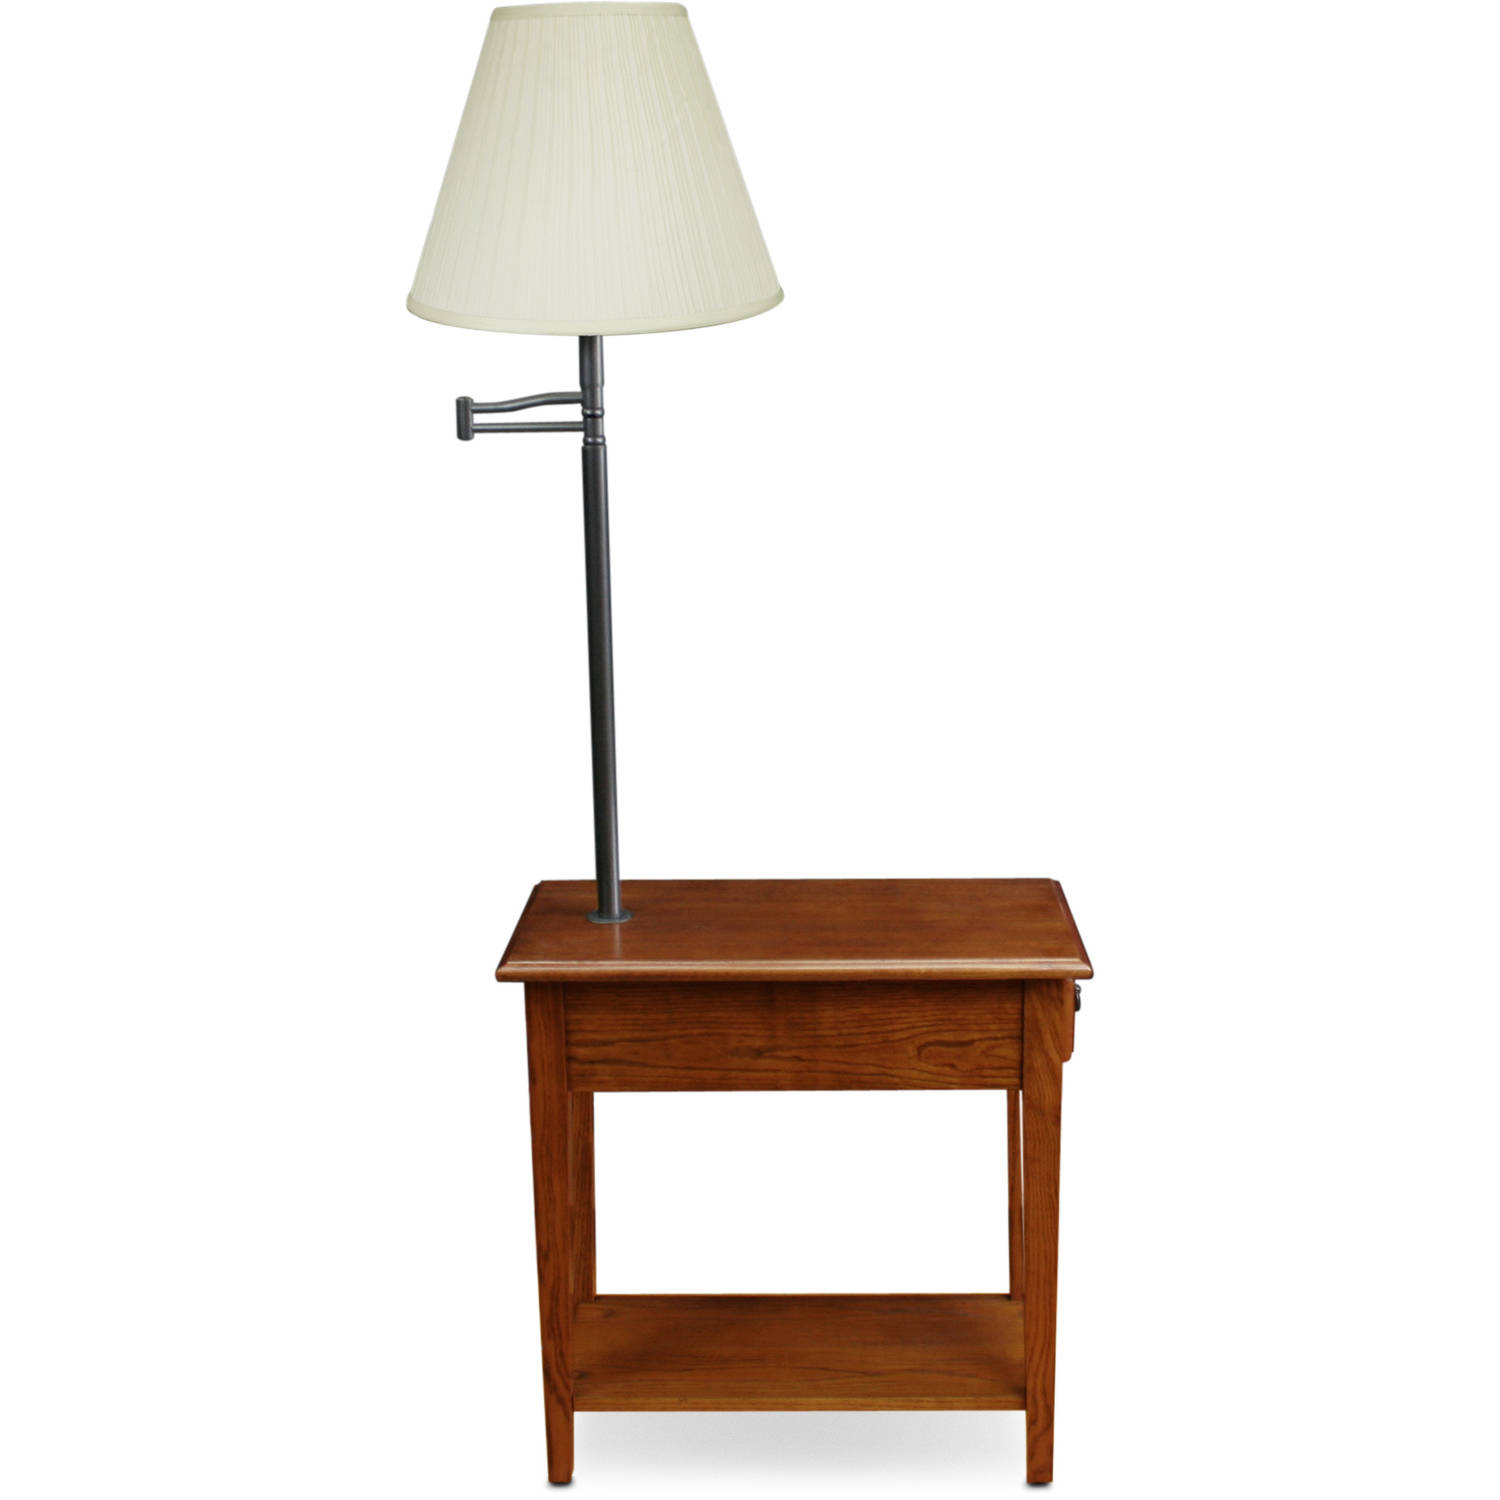 10 reasons to buy end tables with lamps attached warisan lighting why end tables with lamps attached geotapseo Gallery